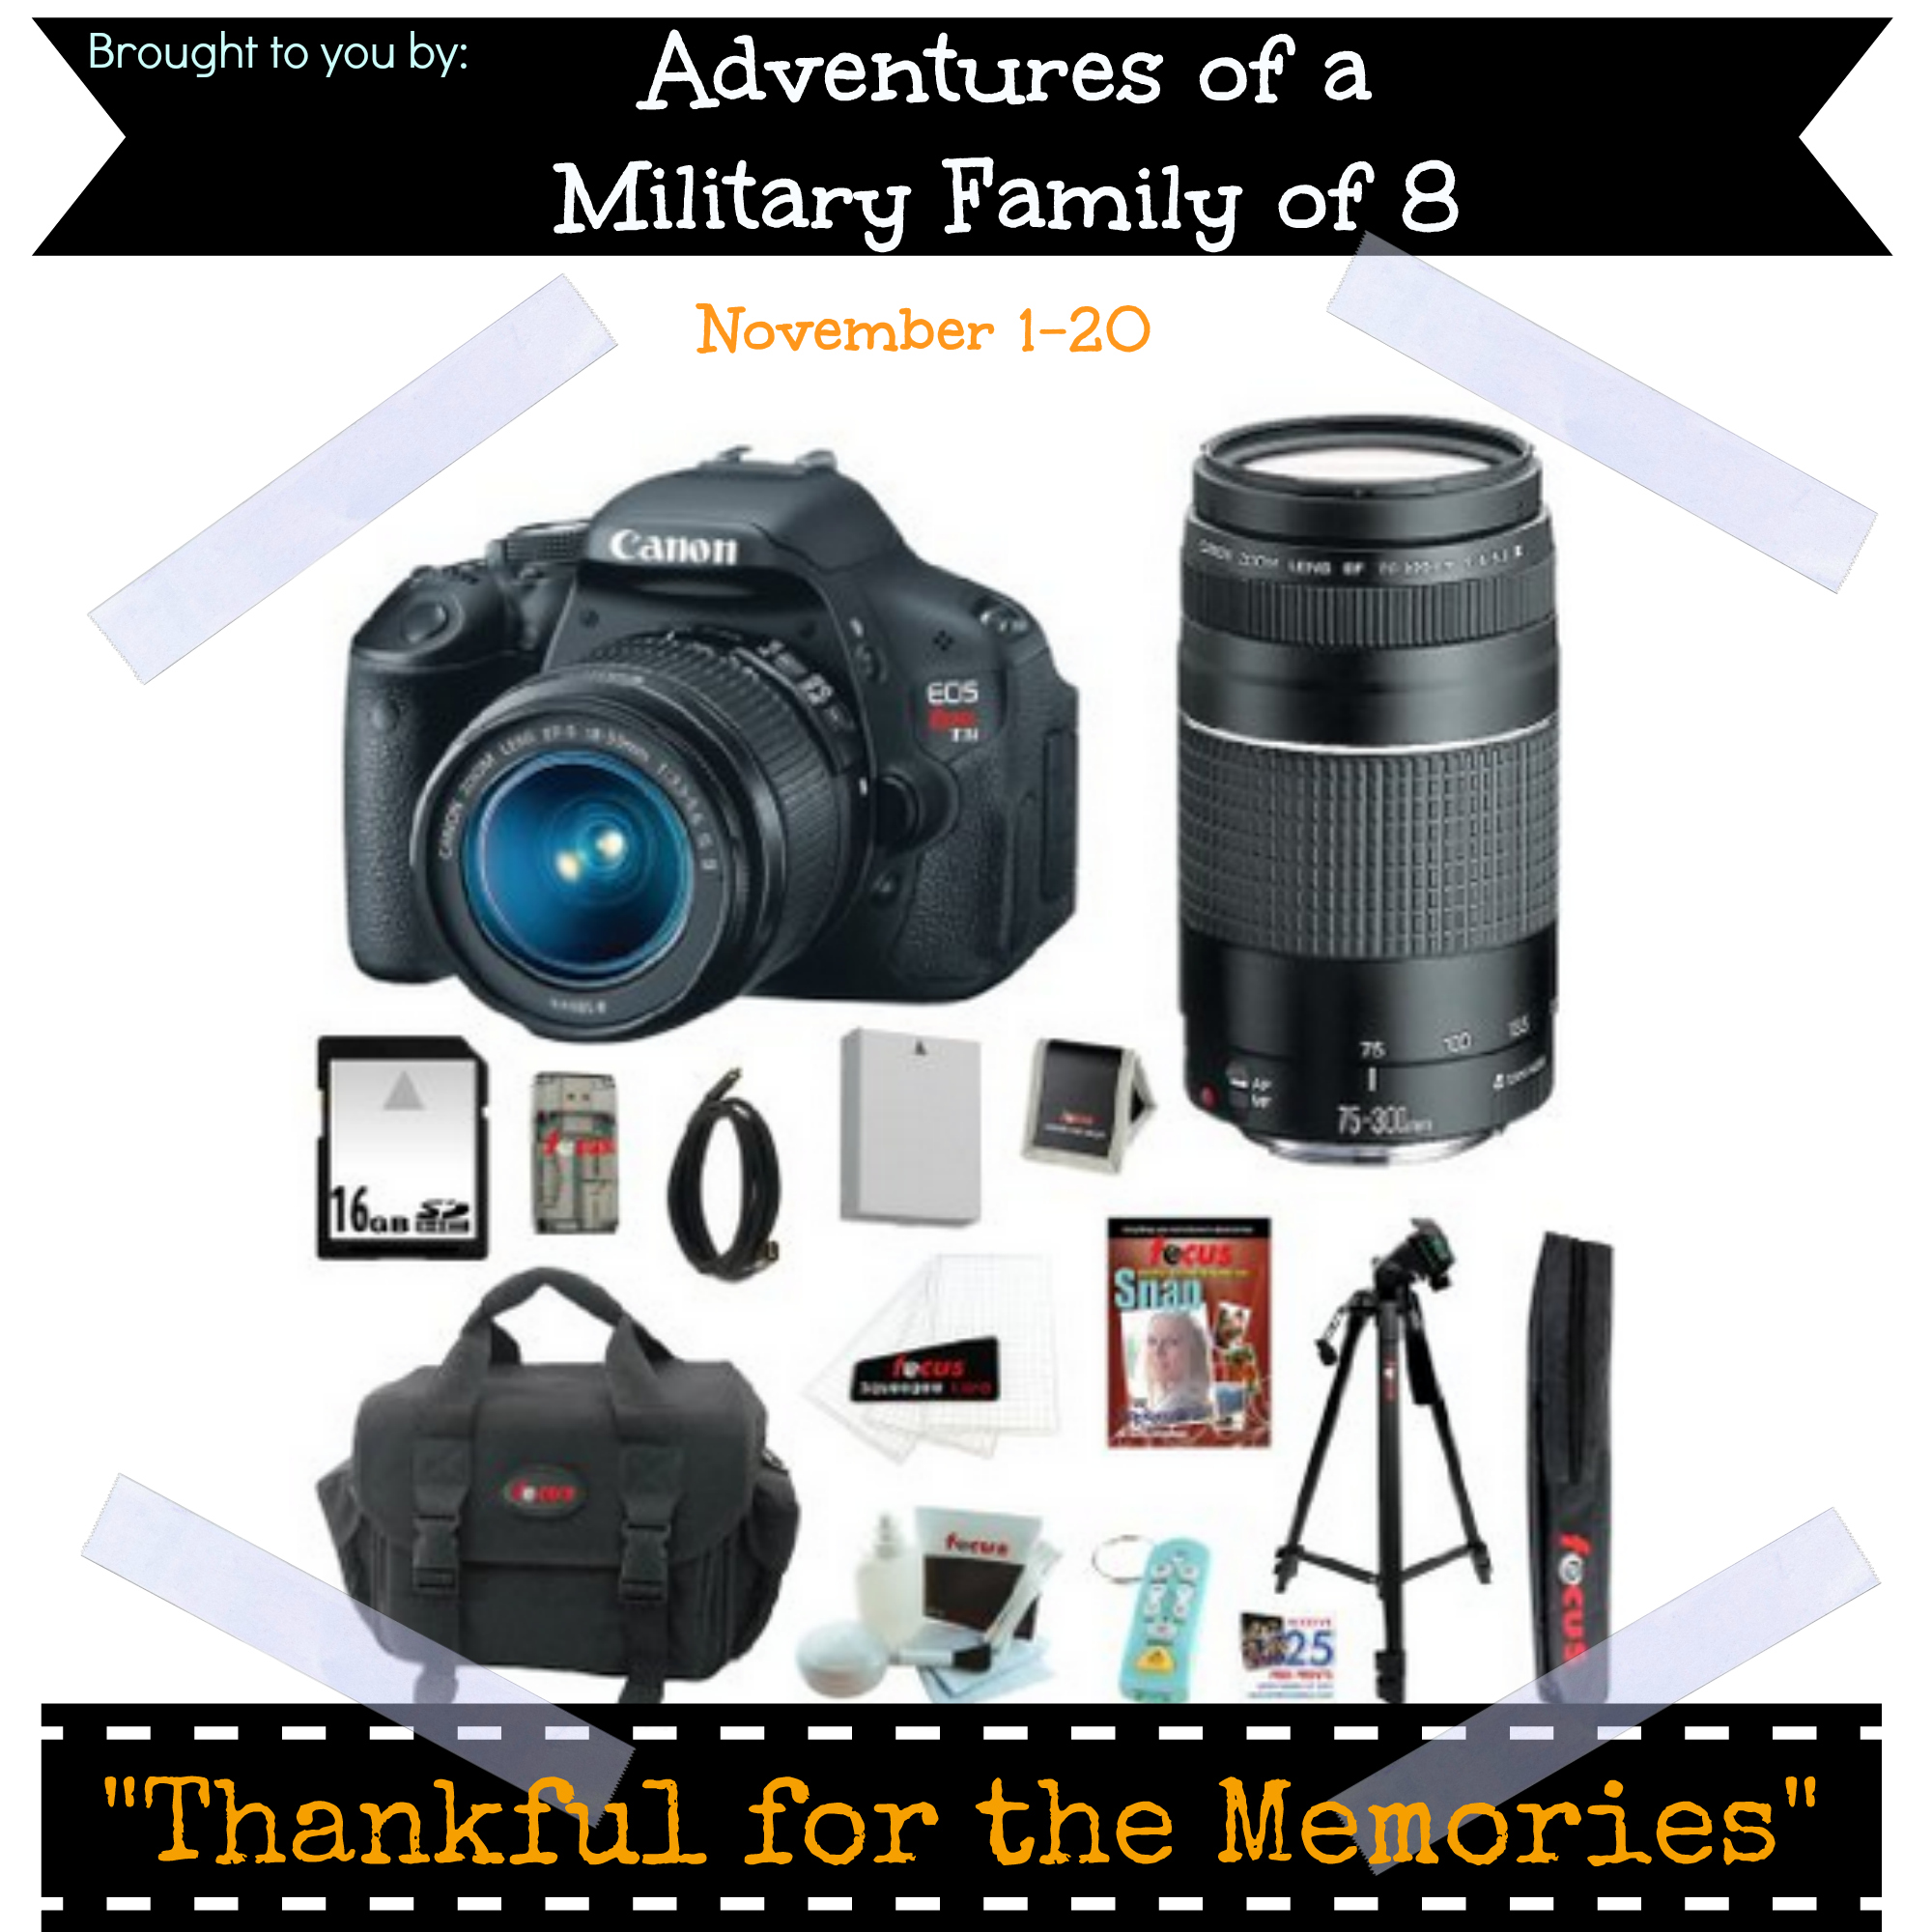 Thankful for the Memories Giveaway: Canon EOS Rebel T3i kit